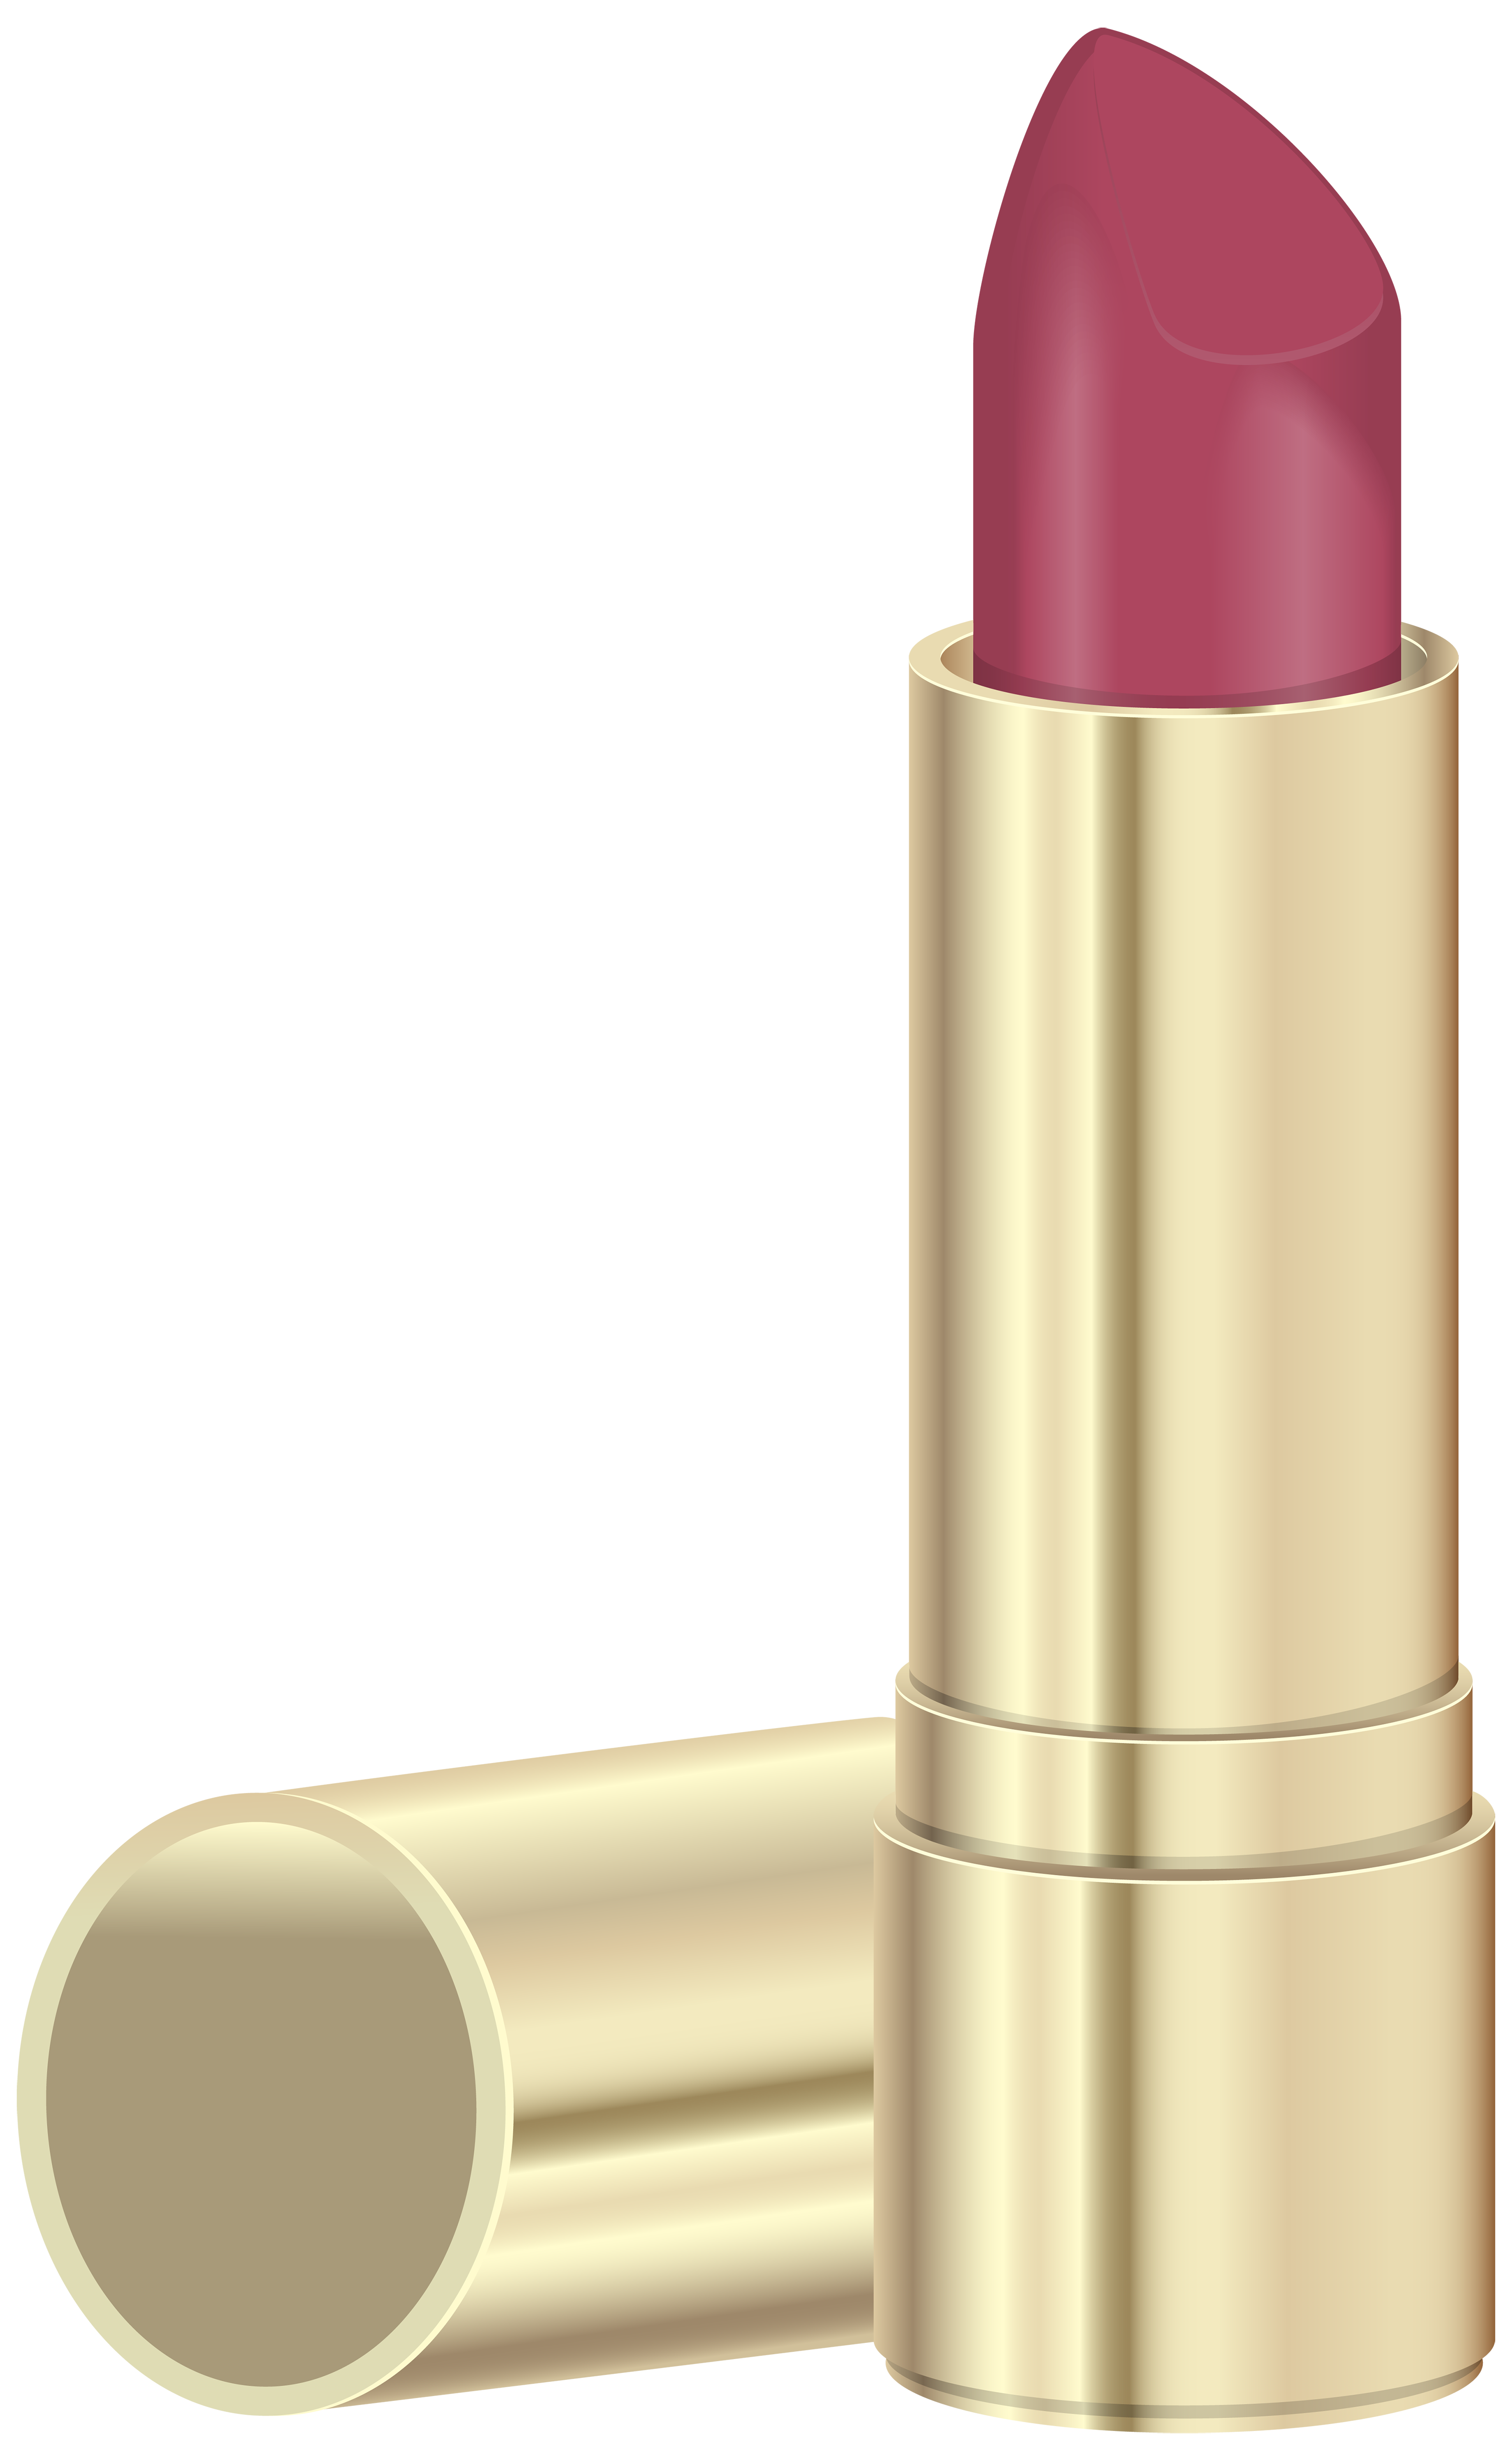 Png image gallery yopriceville. Lipstick clipart